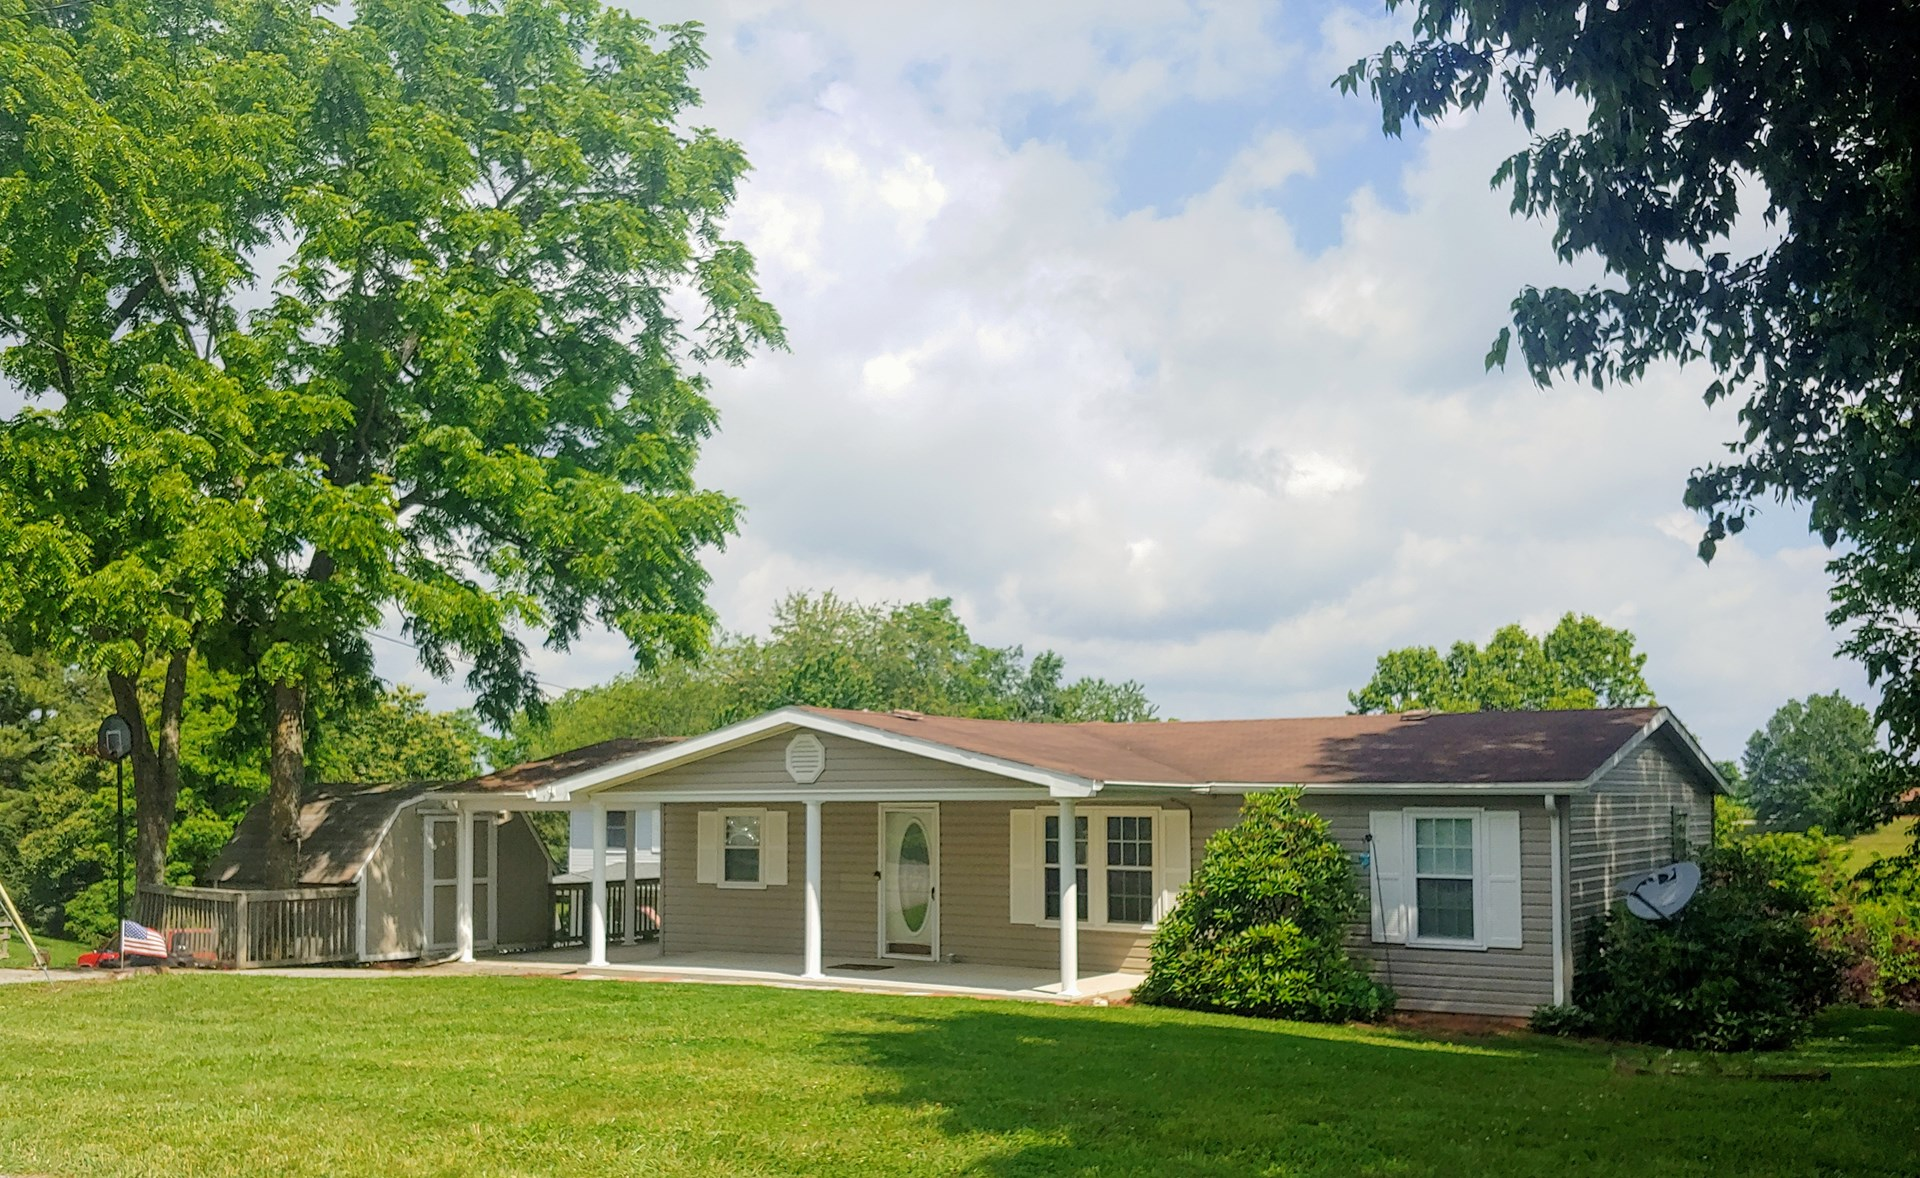 One Level Home for Sale in Christiansburg VA!